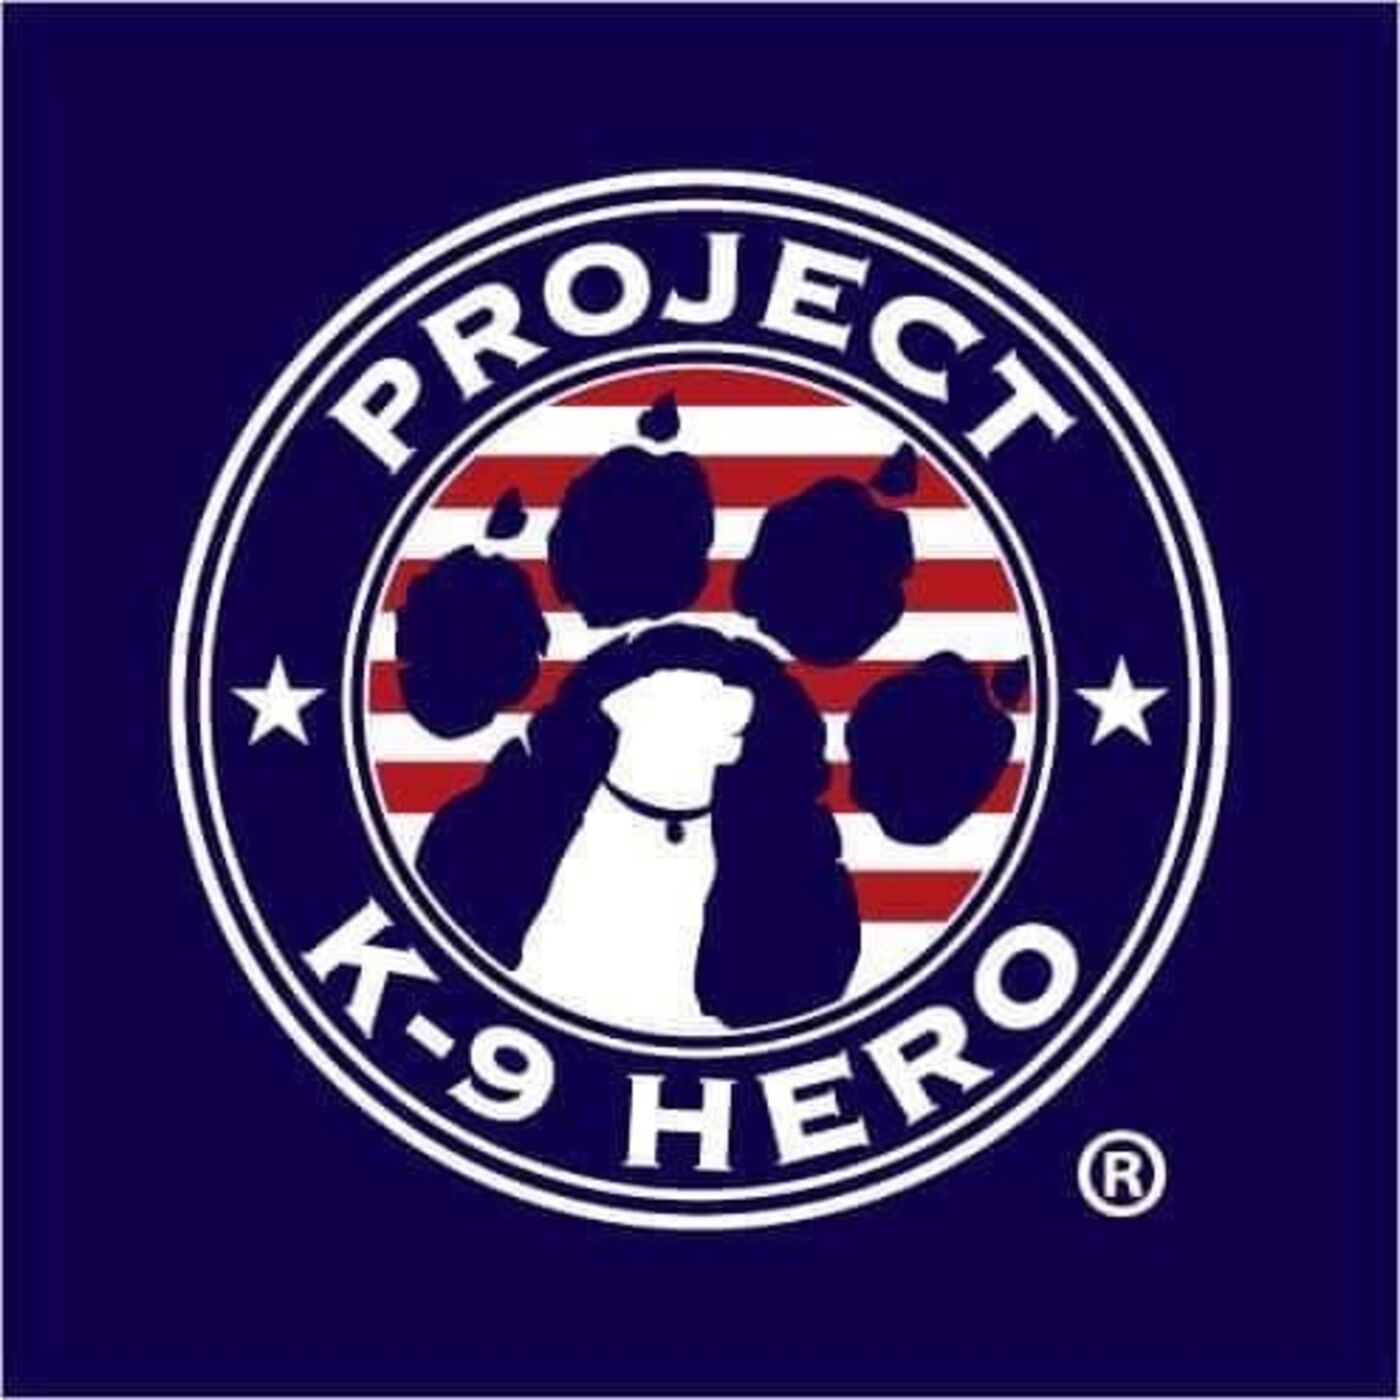 """Special Guest - Project K9 Hero founder Jason Johnson joins us! """"Protecting Those Who Protected Us"""""""